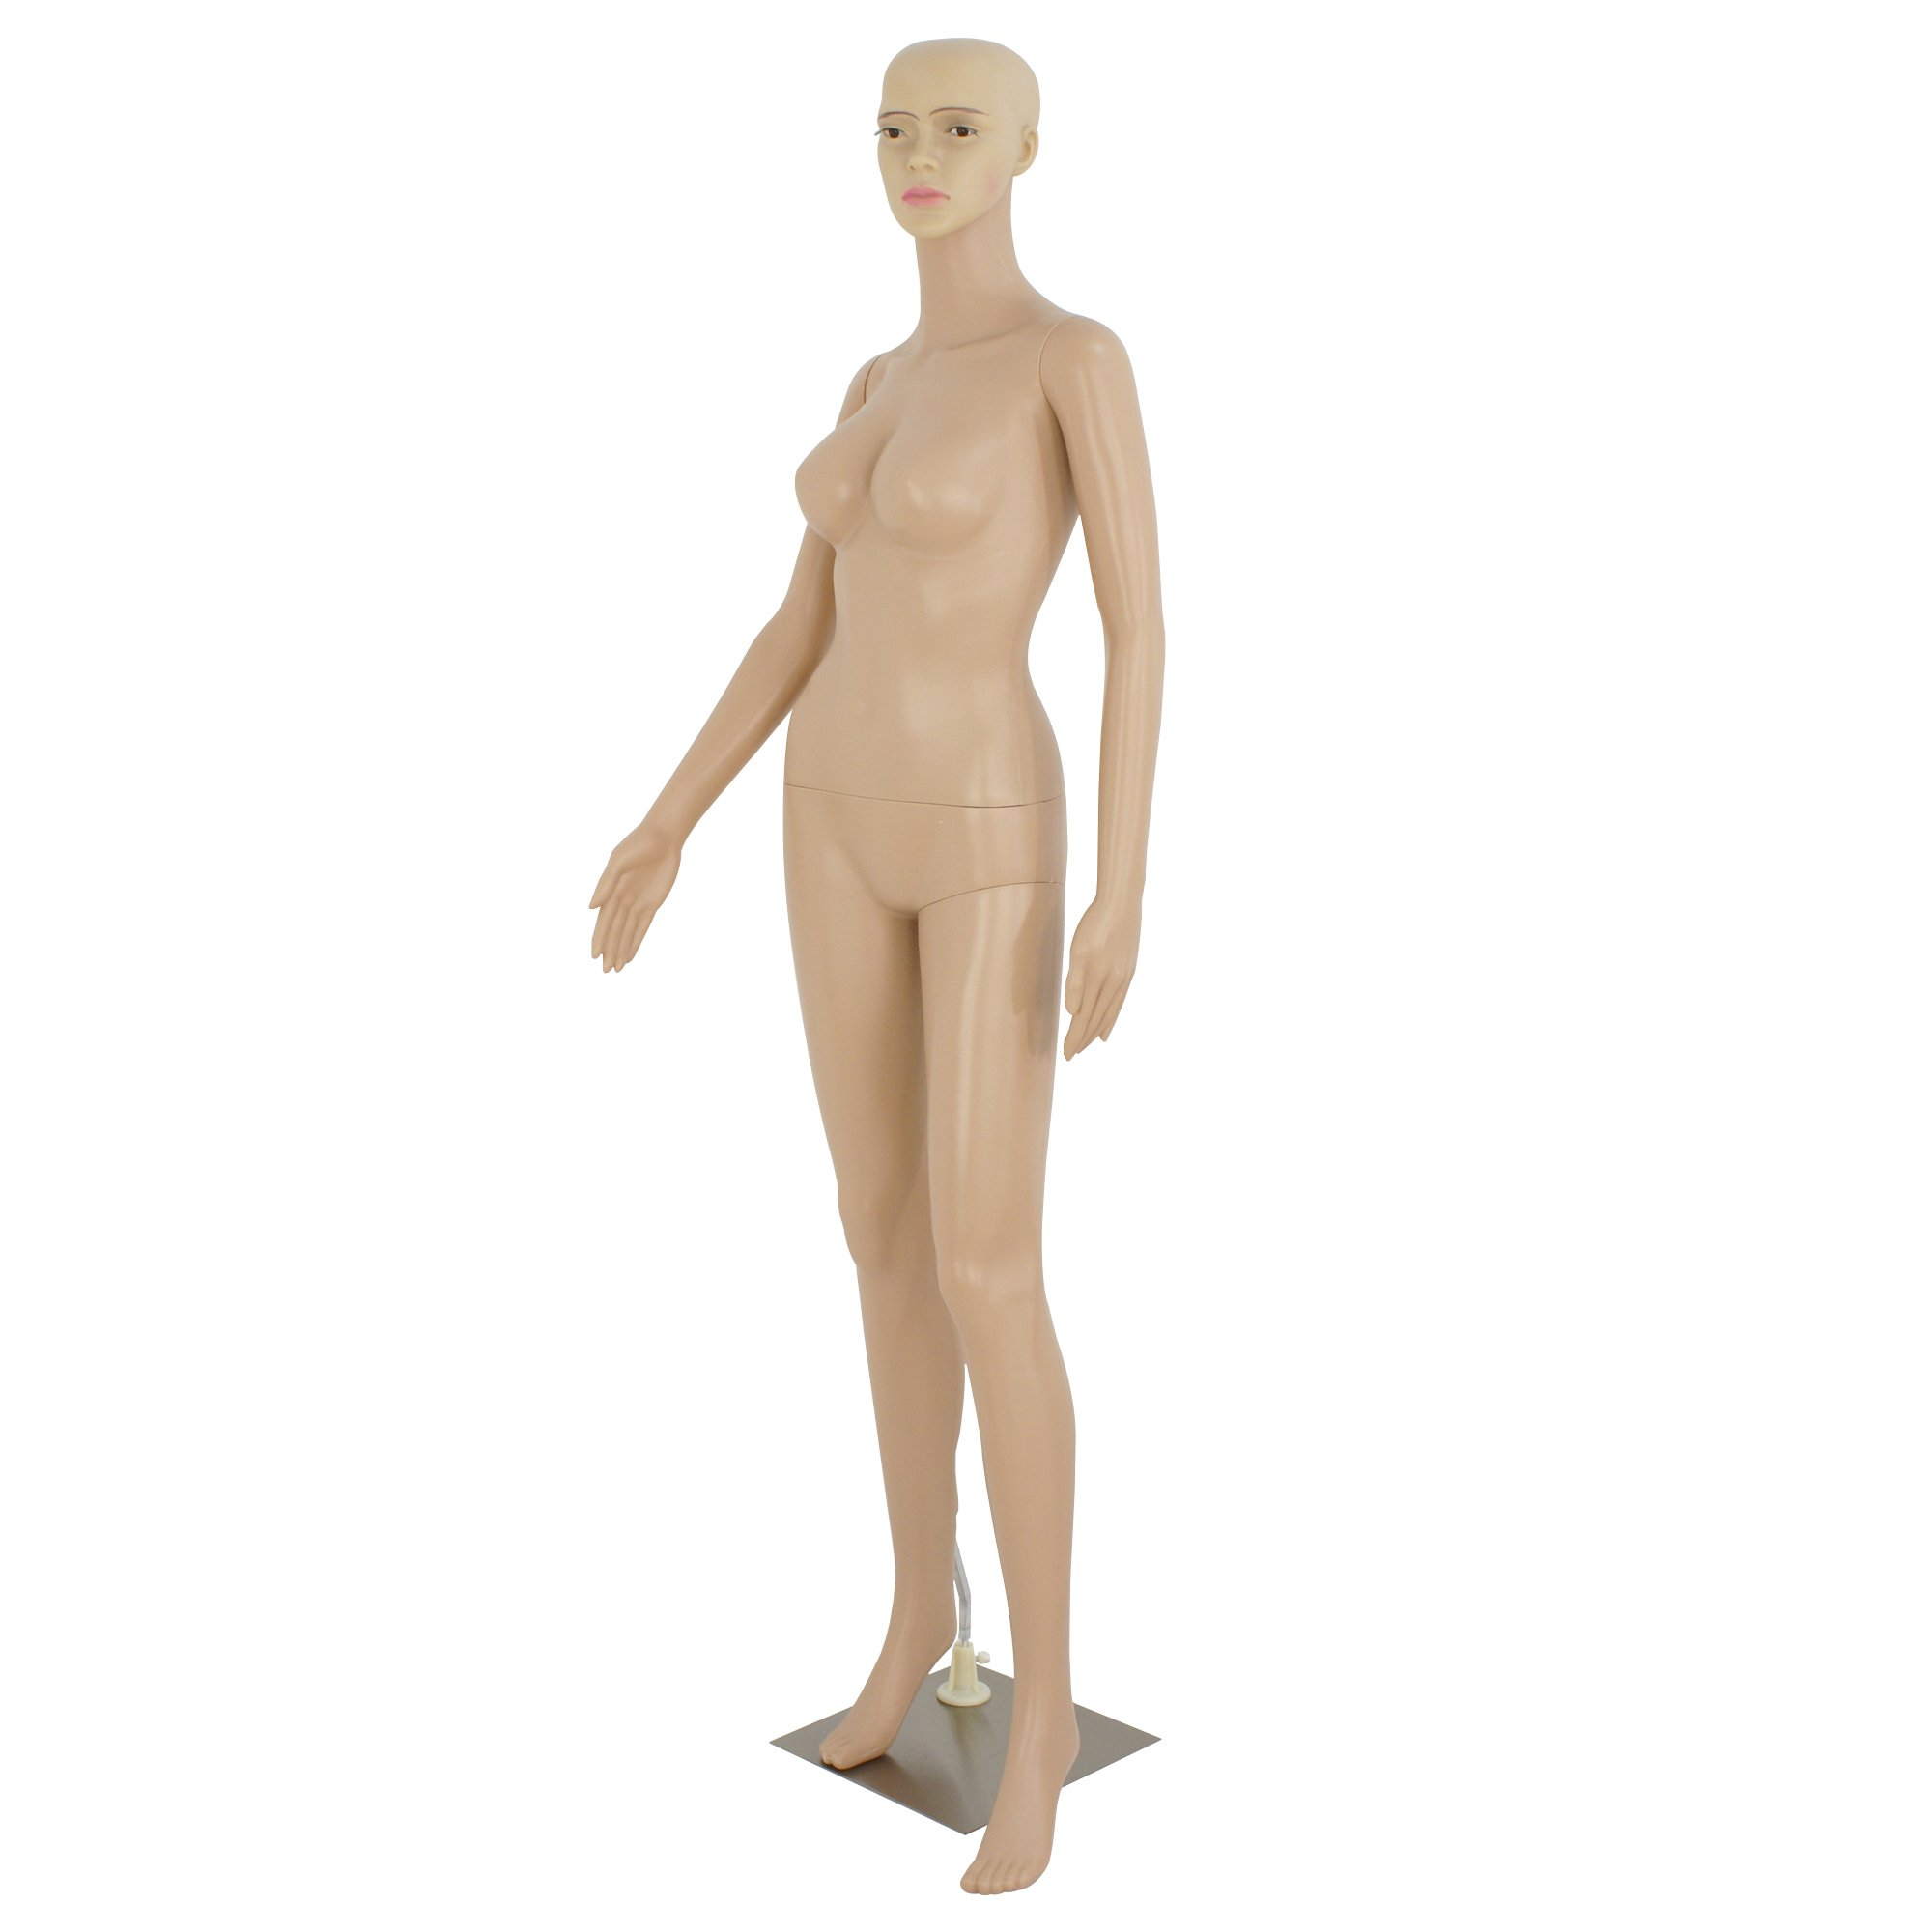 Yaheetech 68.9 Adjustable Detachable Plastic Full Body Adult Female Mannequin Dress Form w//Base